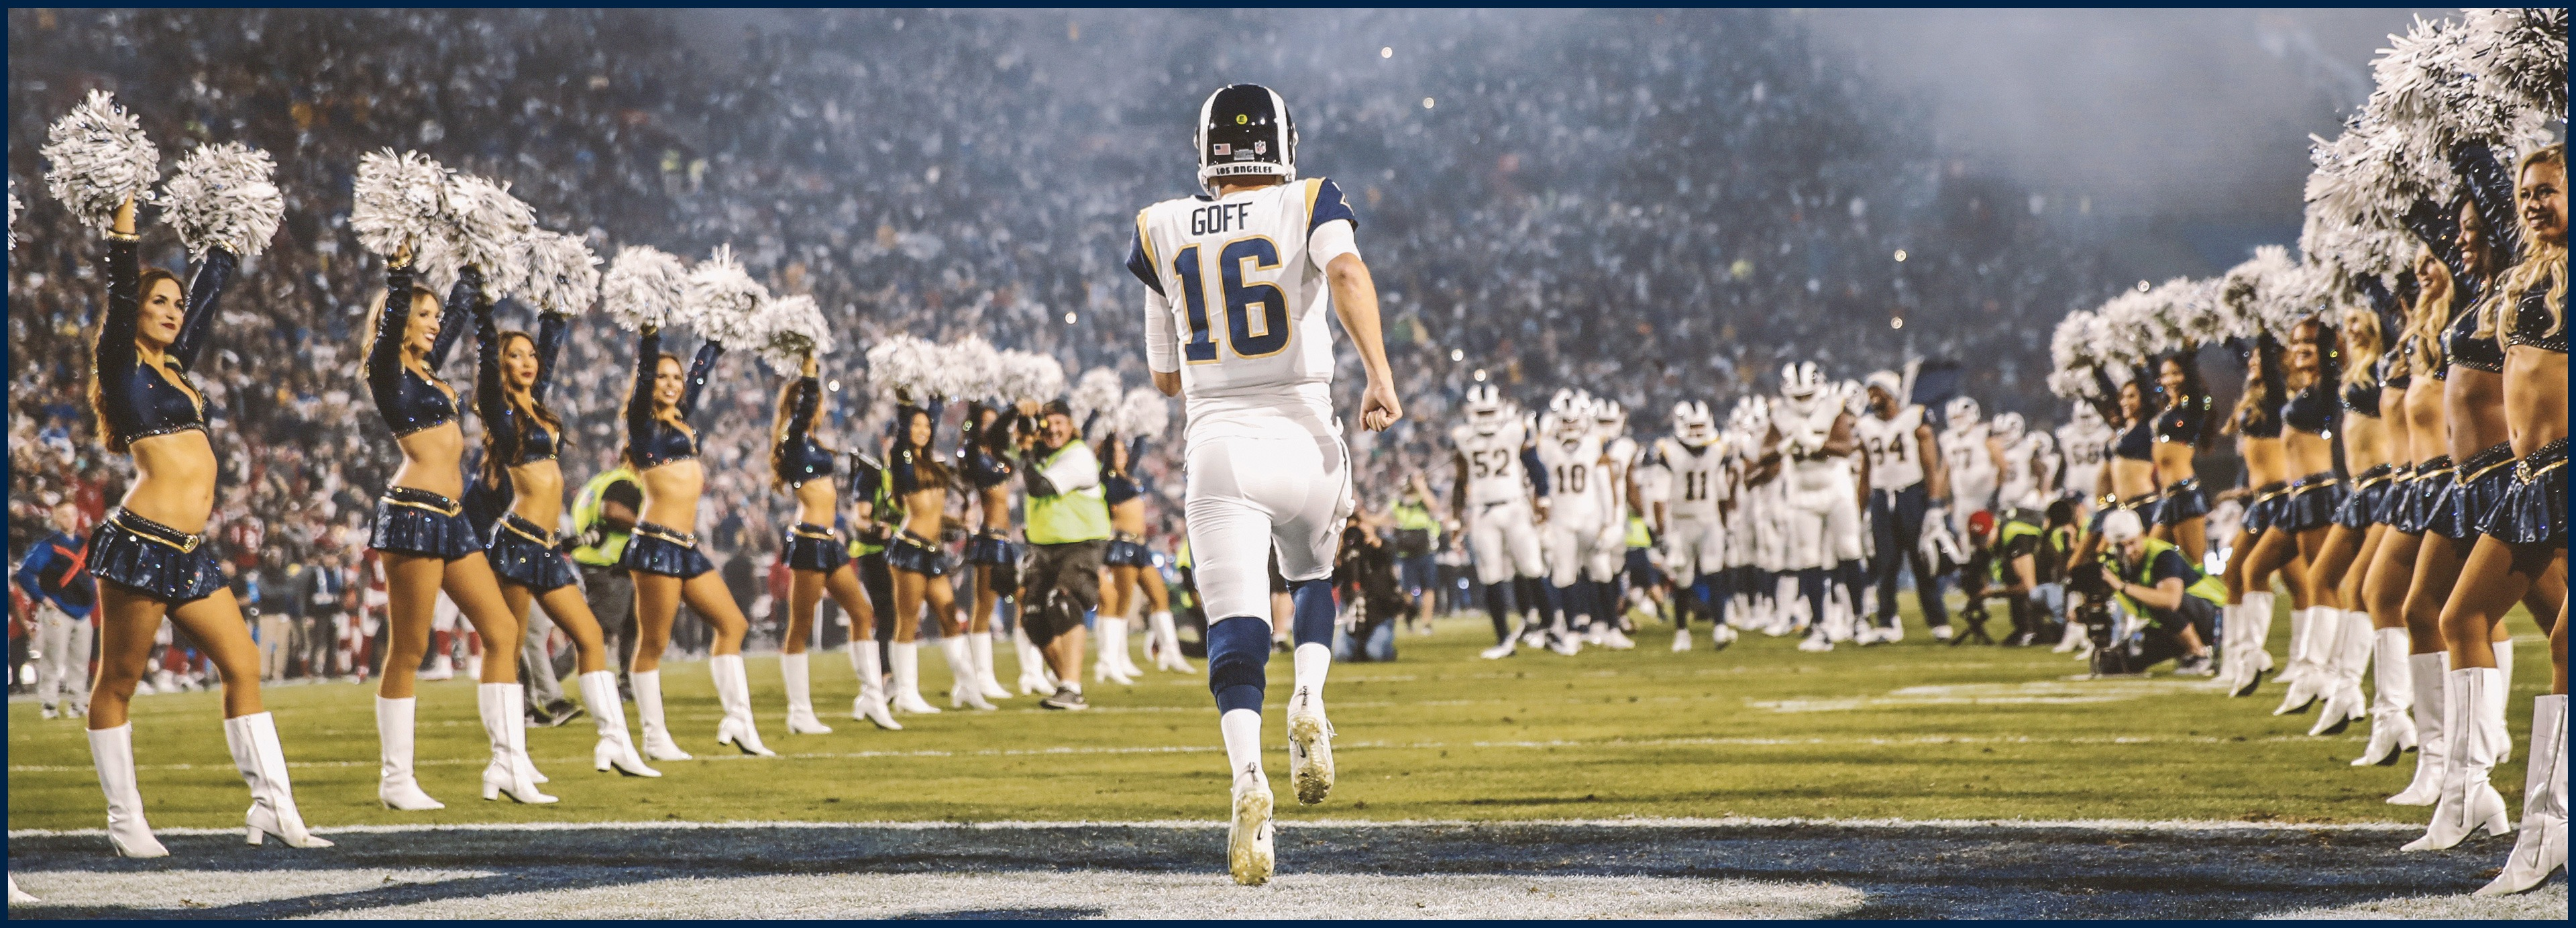 new style c9d75 0b2fe Official Site of the Los Angeles Rams